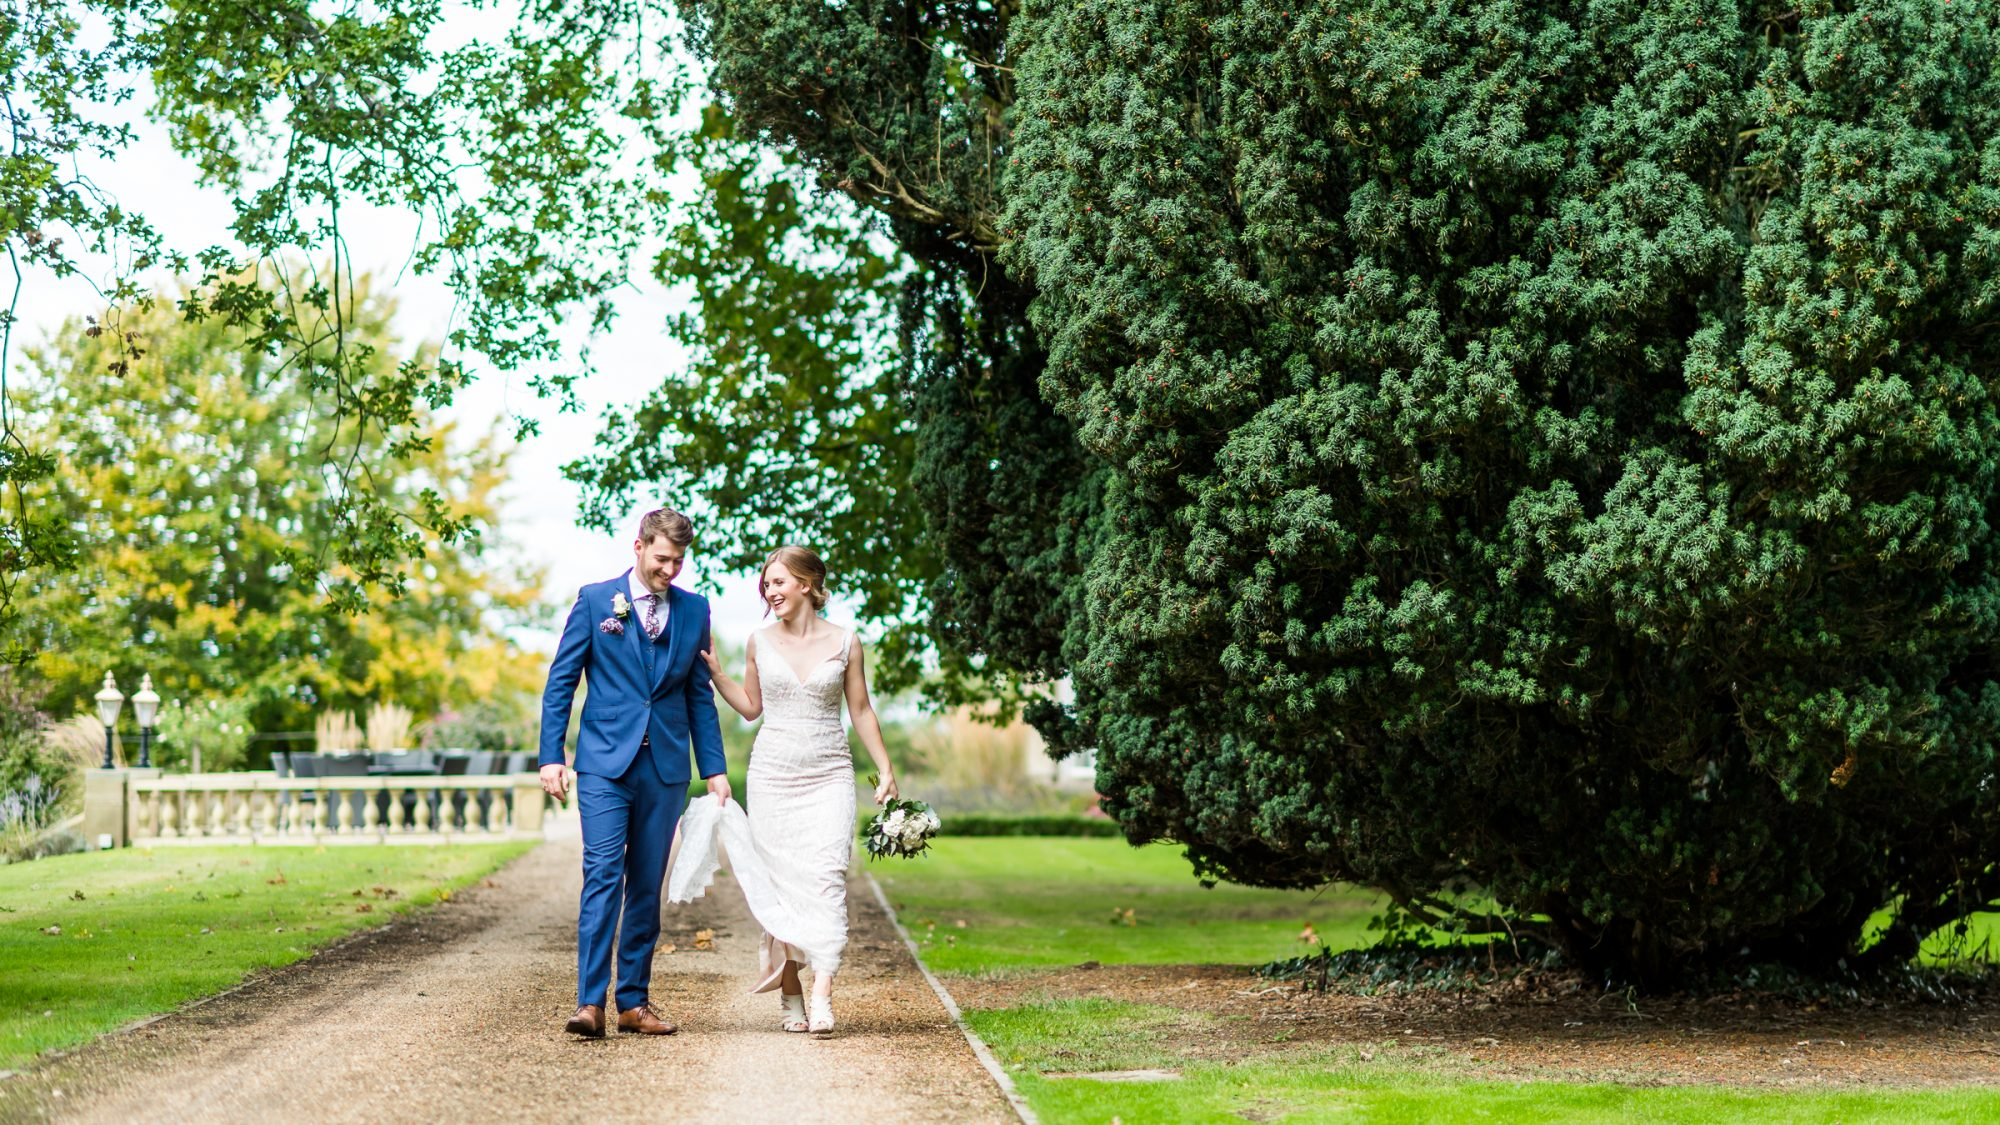 Just married at Hothorpe Hall